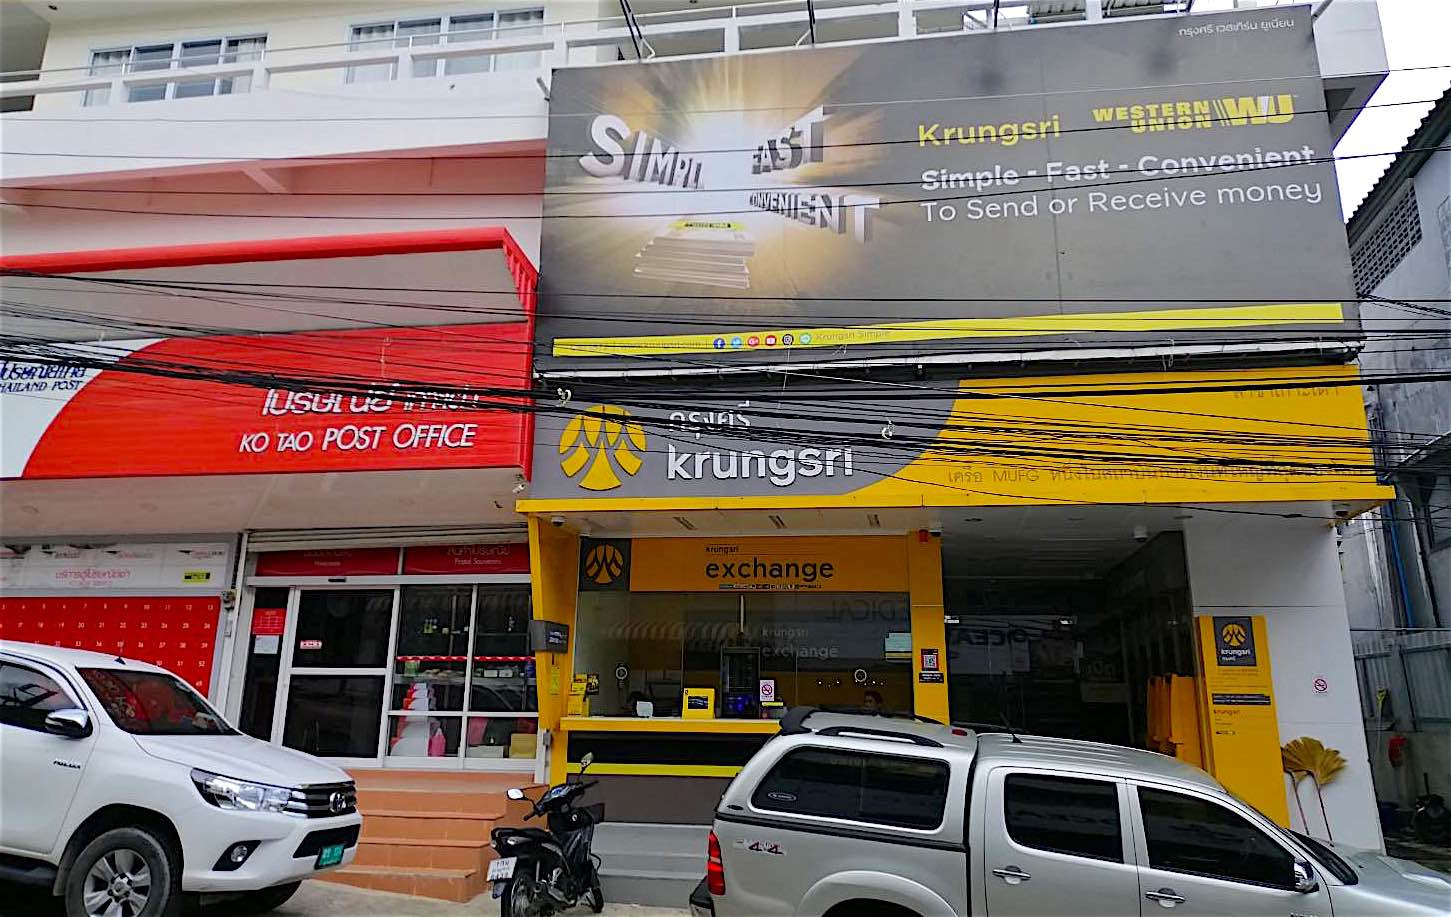 www.thefunkyturtle.com post office on koh tao